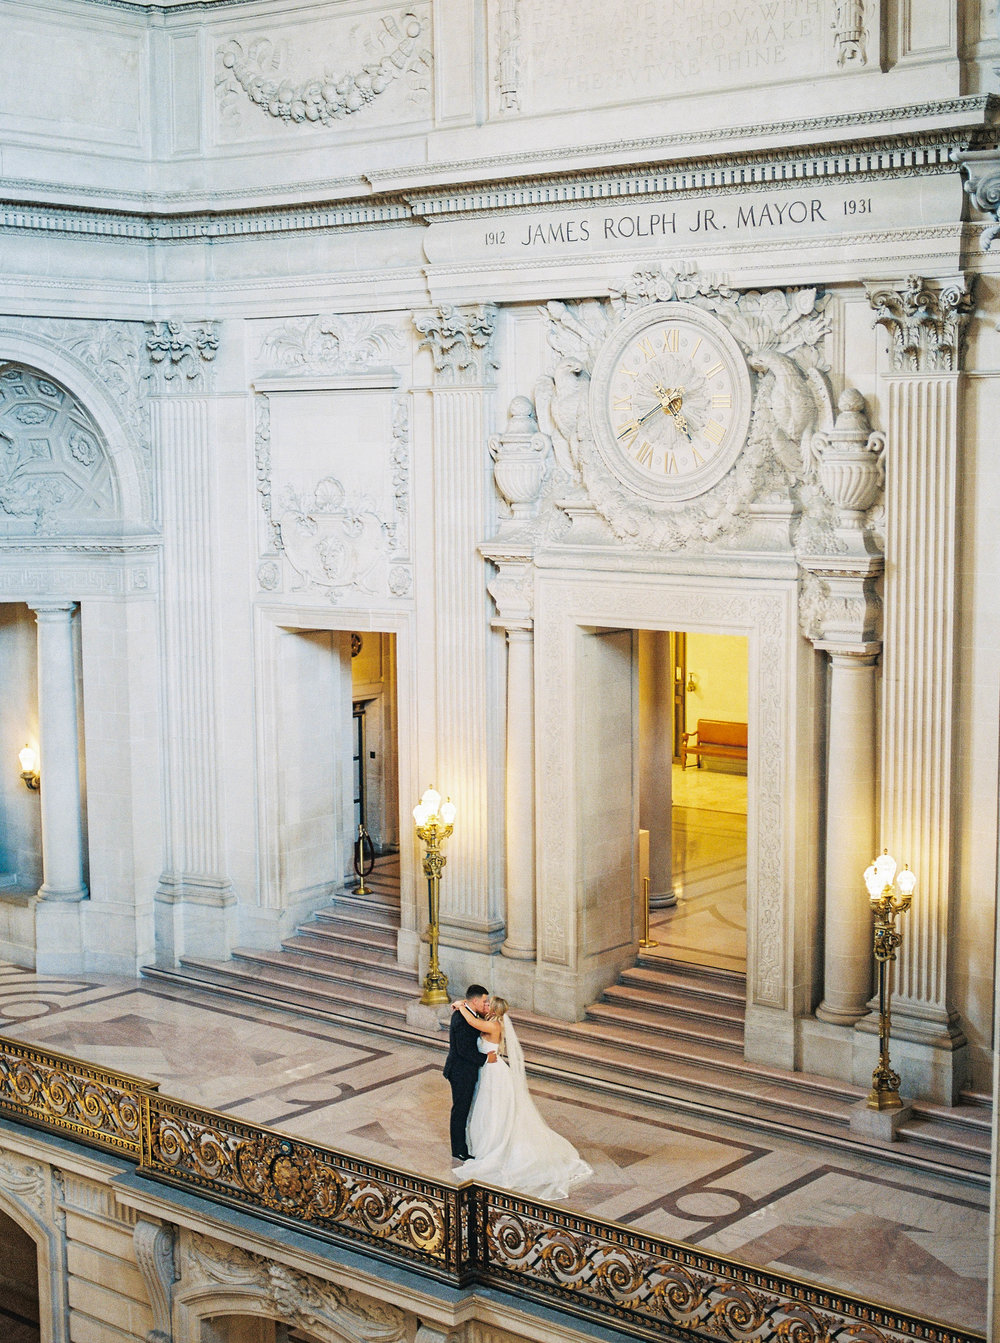 DennisRoyCoronel_Photography_SanFranciscoCityHall_Wedding-84.jpg